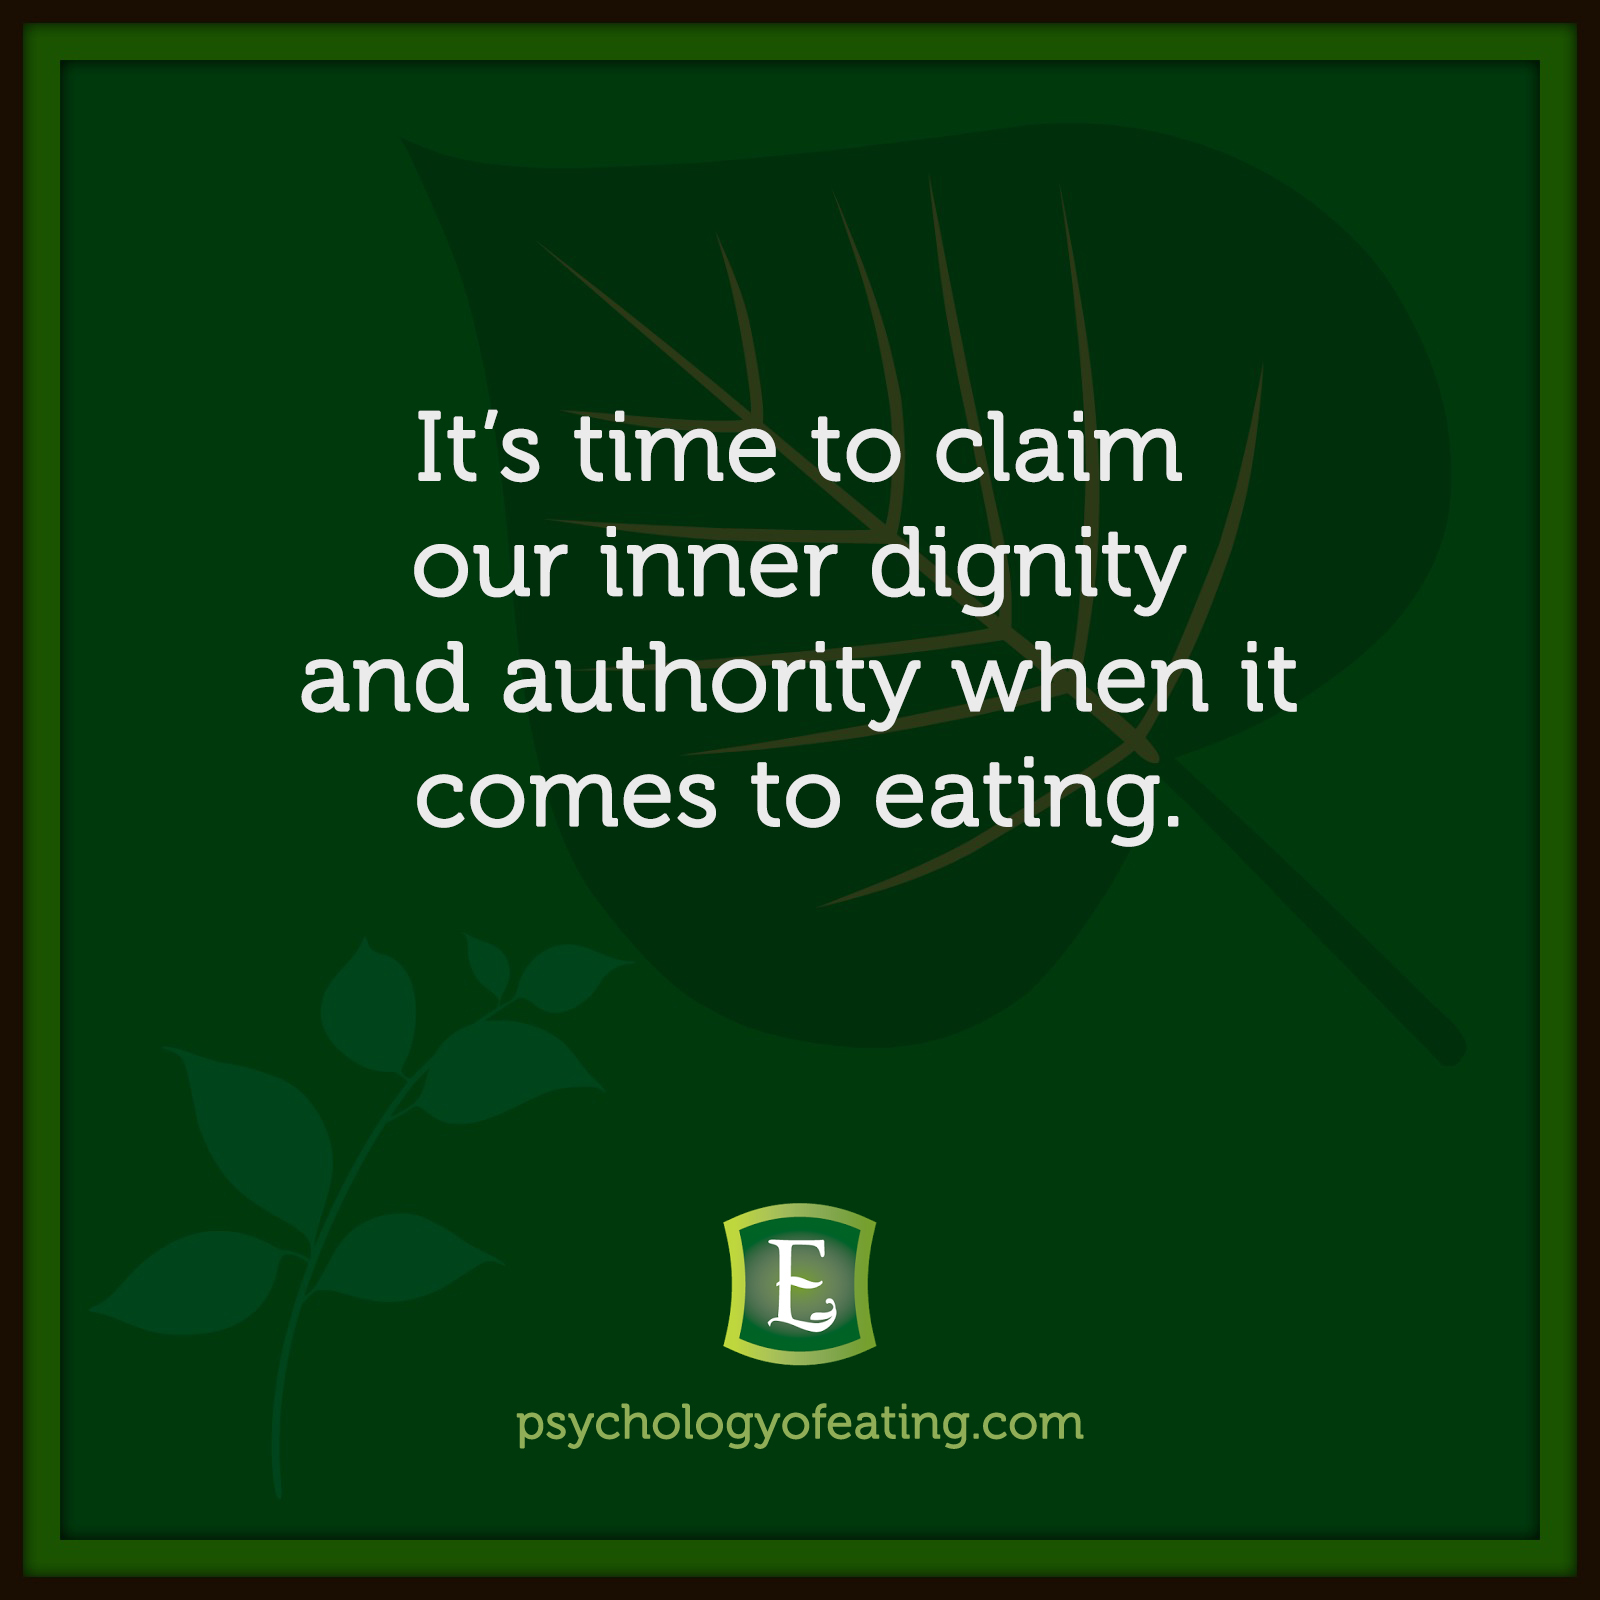 It's time to claim our inner dignity and authority when it comes to eating. #health #nutrition #eatingpsychology #IPE